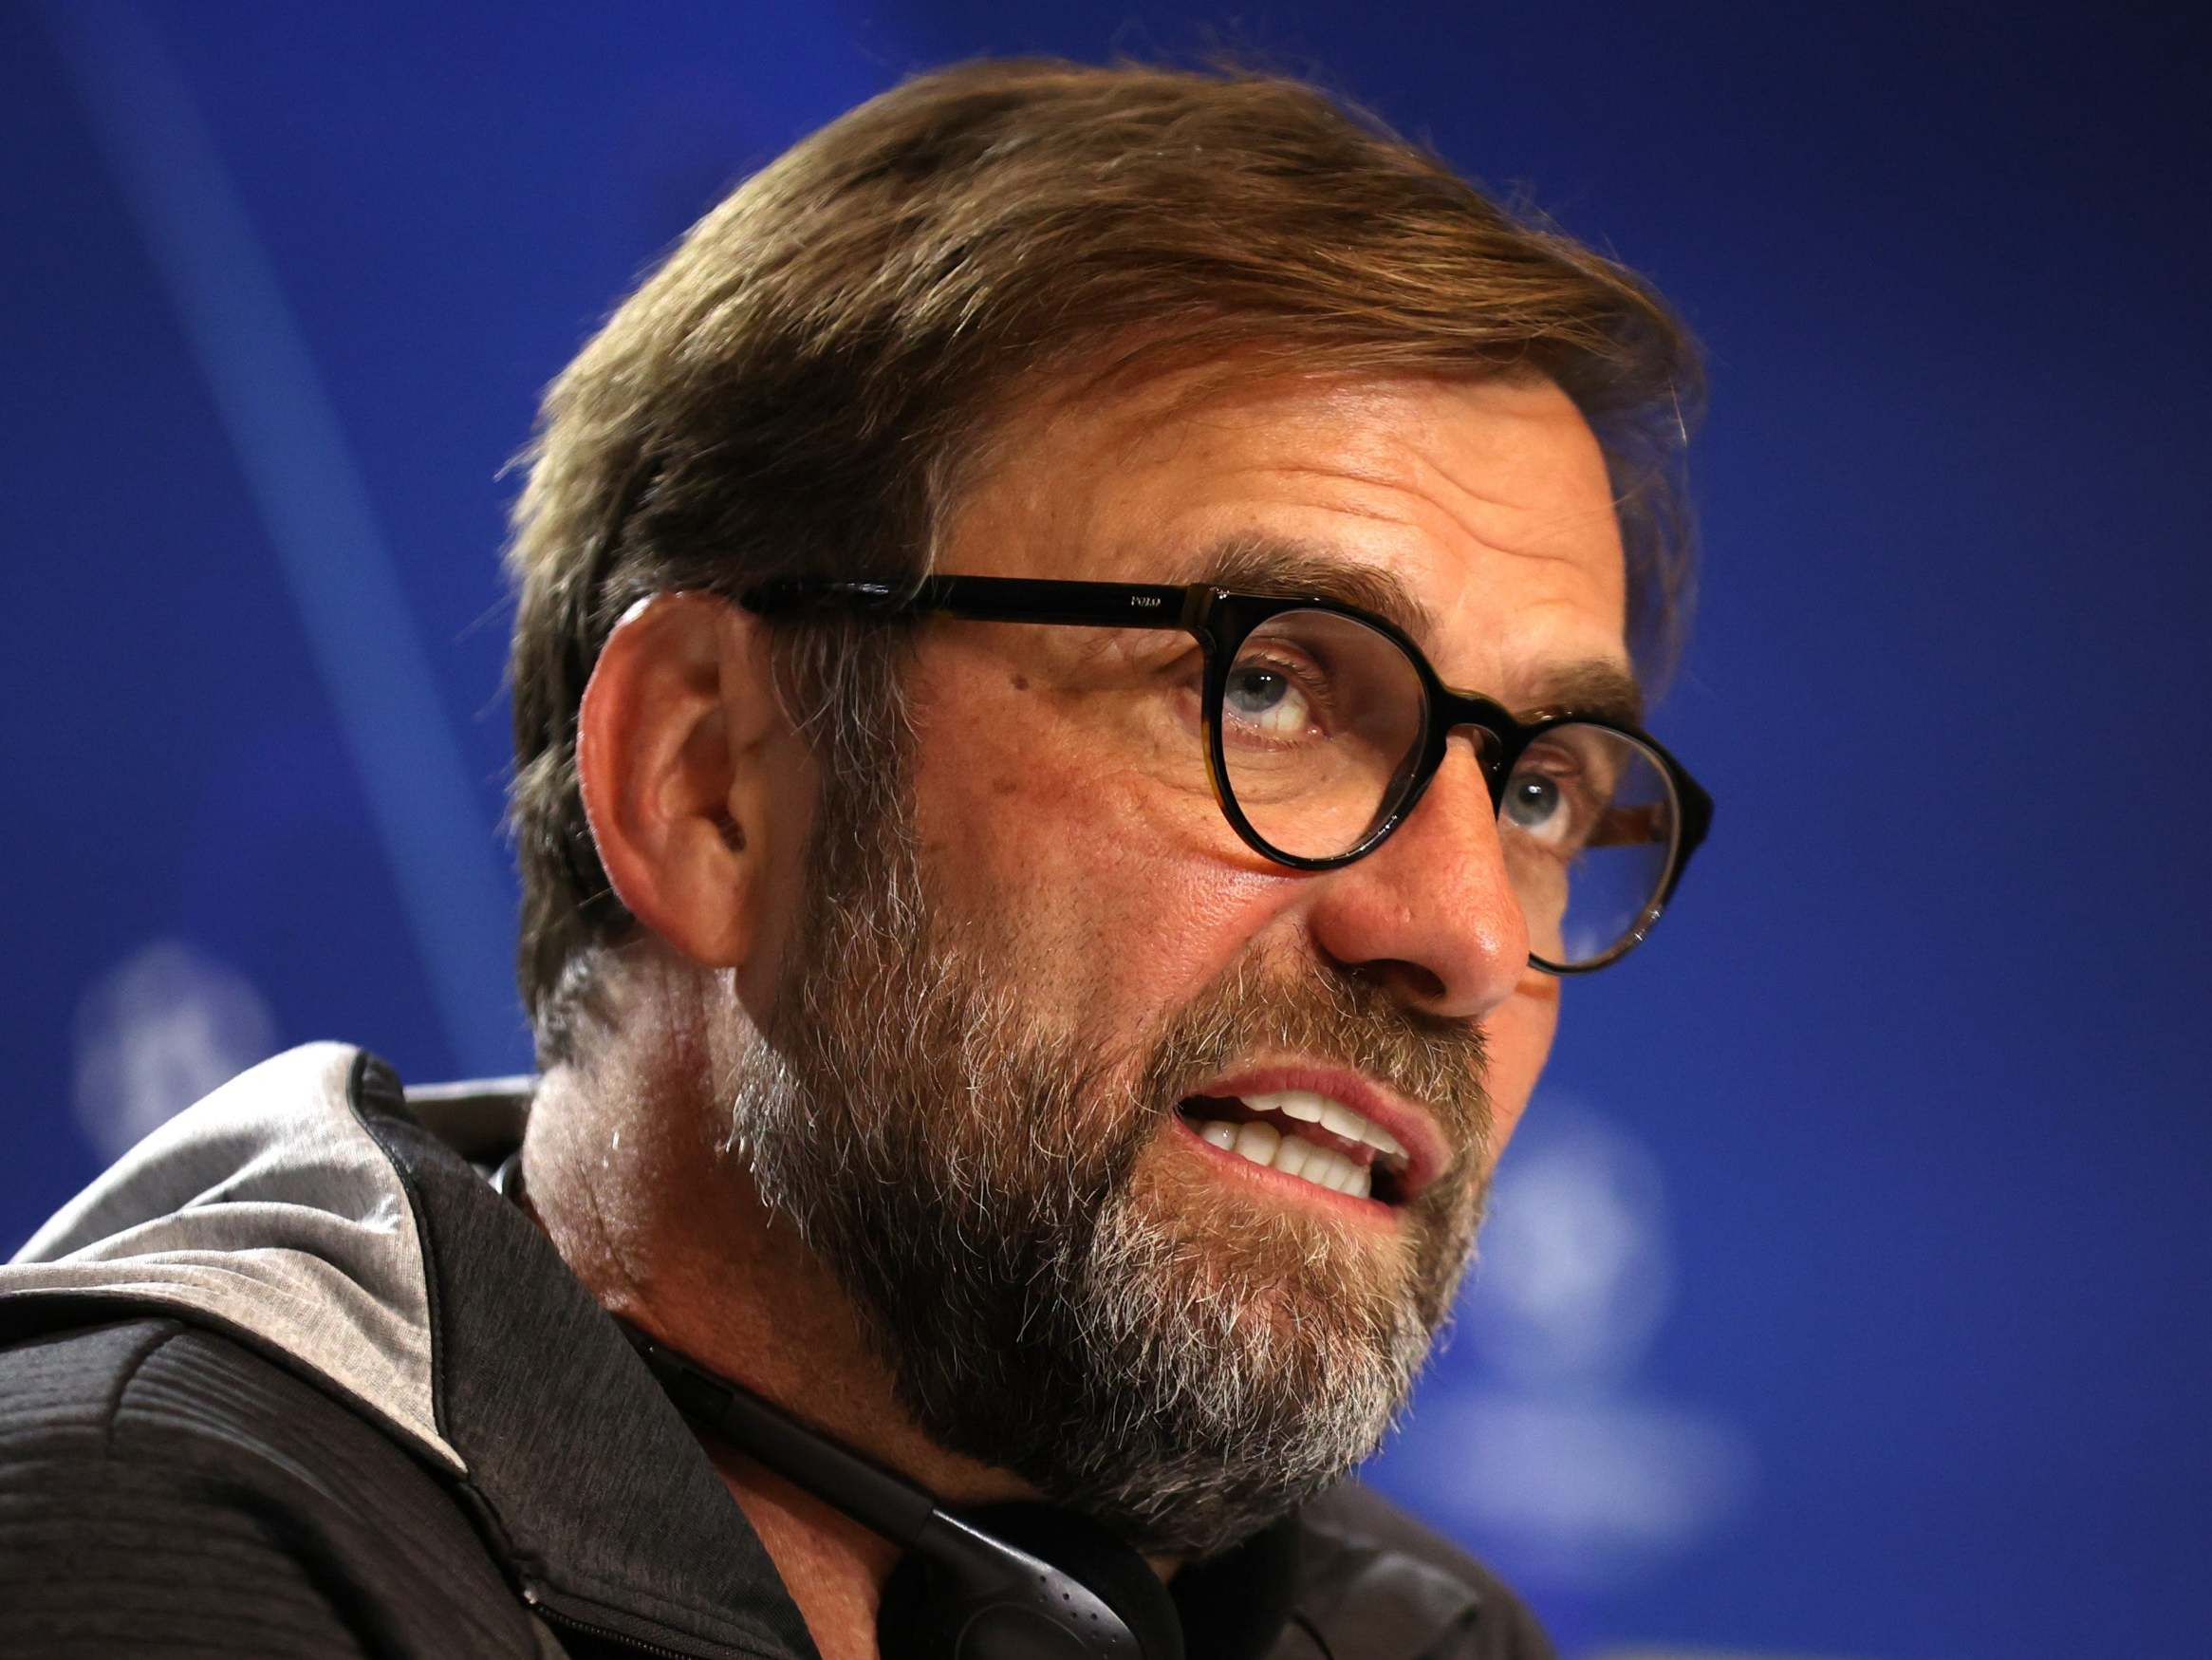 Jurgen Klopp hails Timo Werner and Kai Havertz as 'great players' – but admits Liverpool are unlikely to make major signings thumbnail